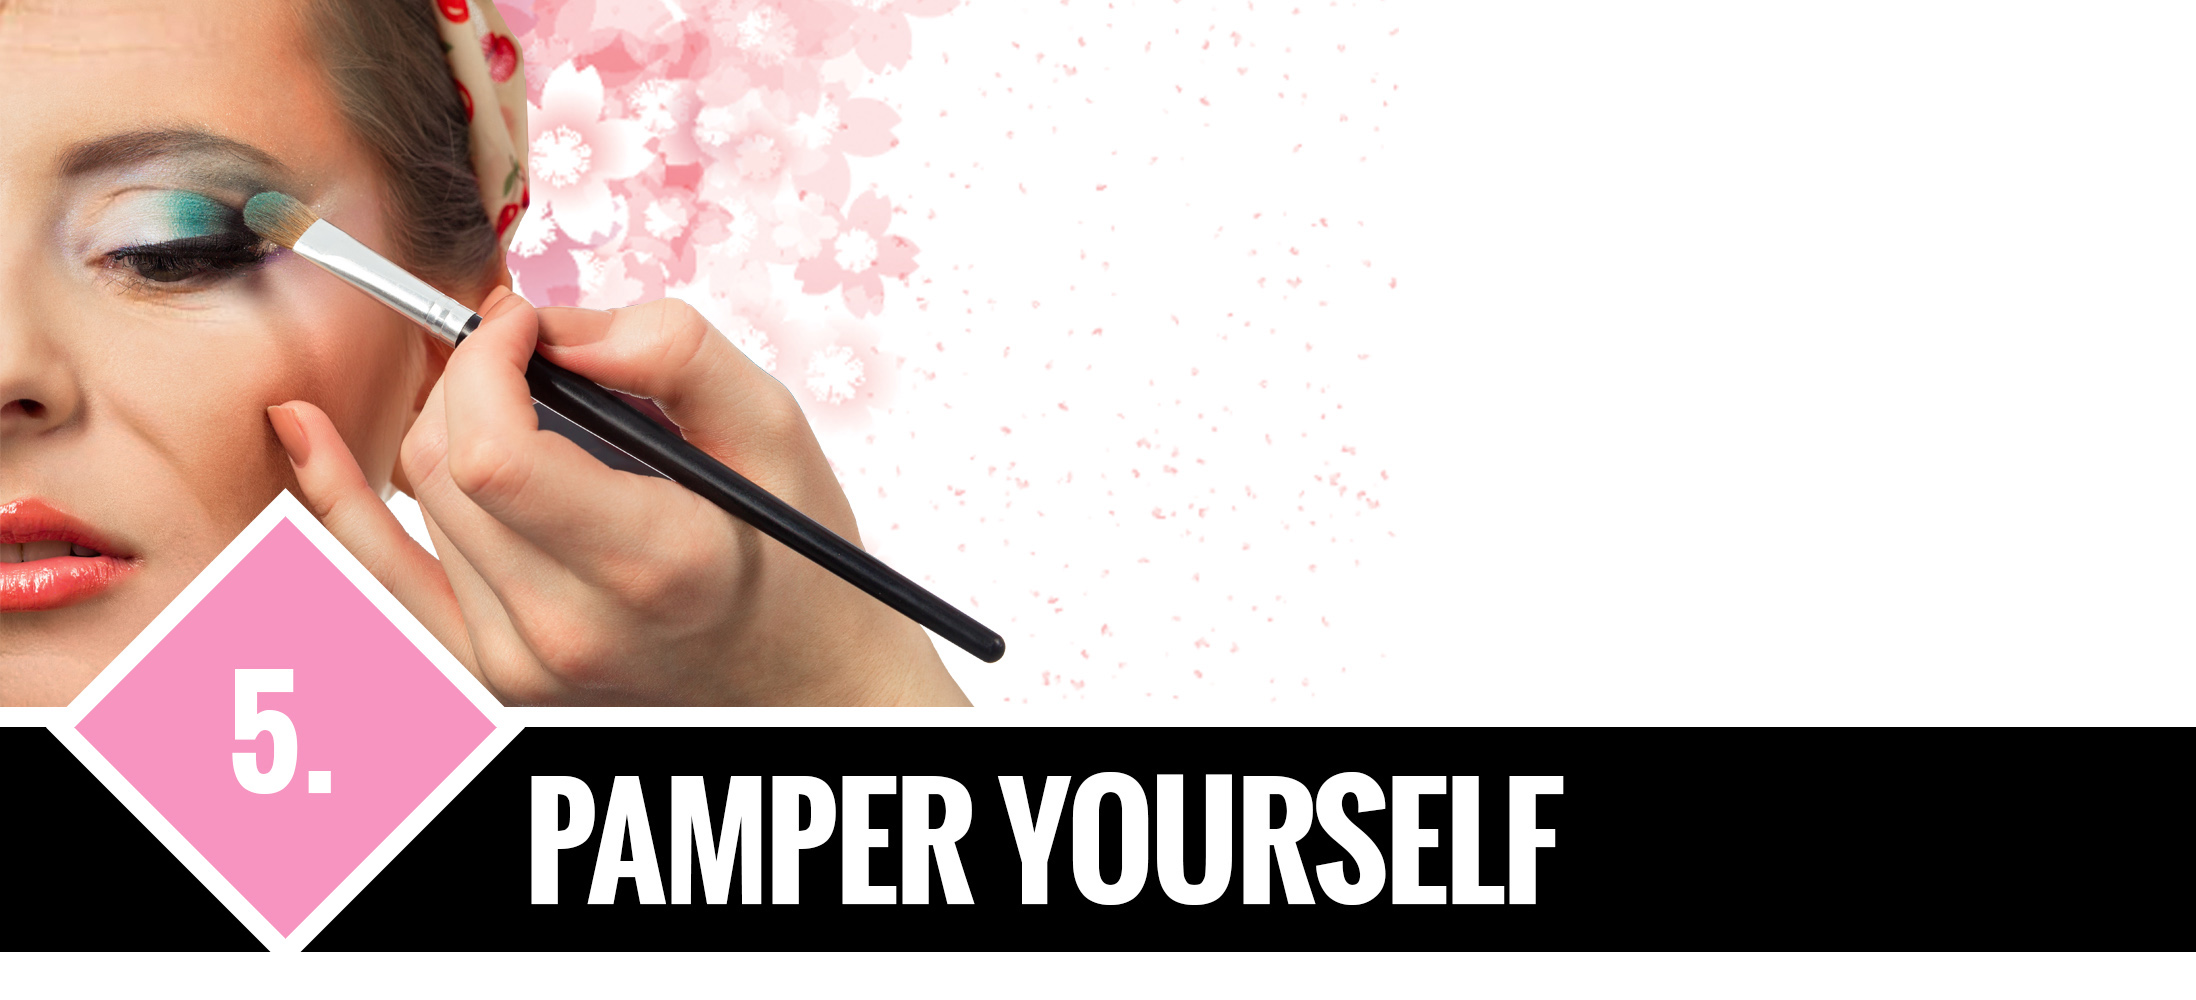 5. Pamper Yourself